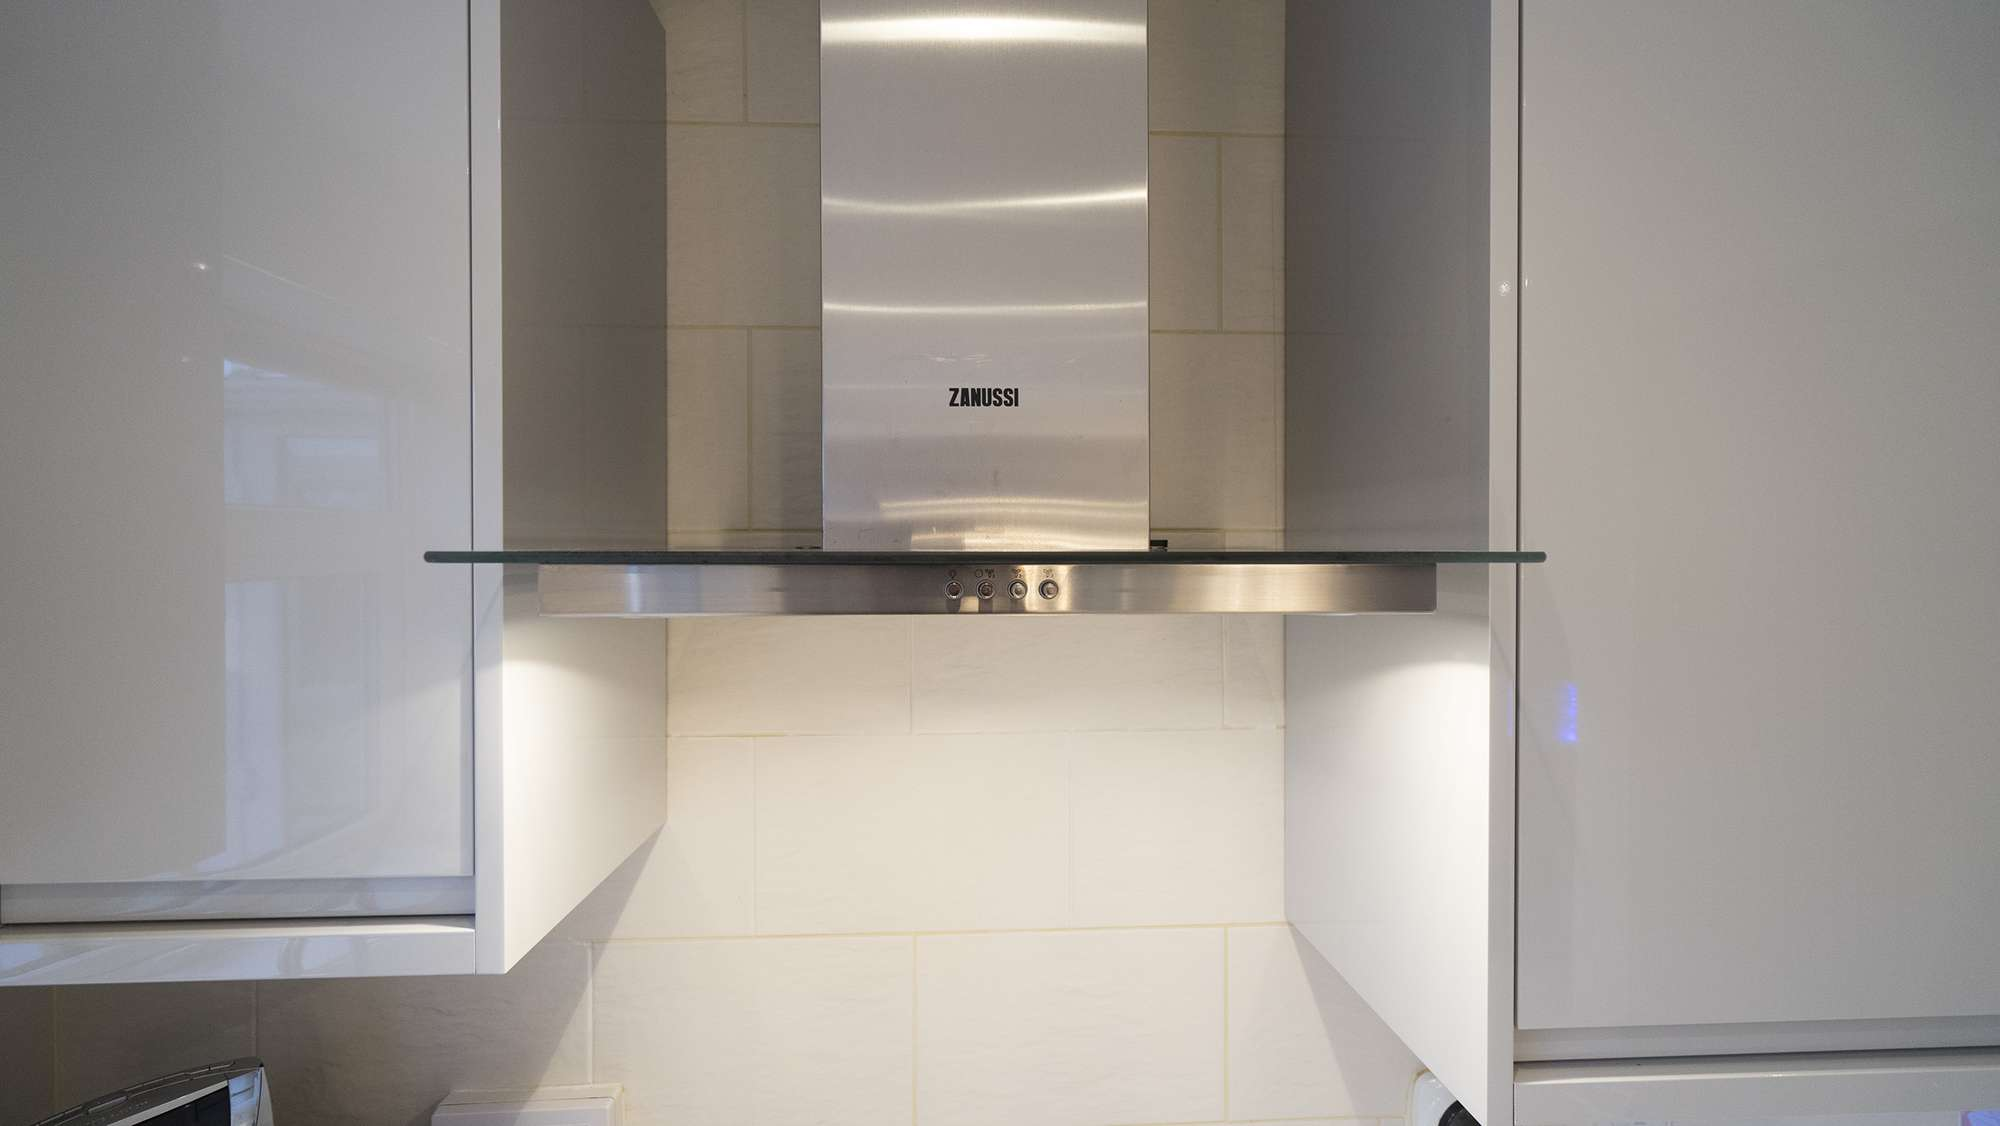 Close up of the Zanussi kitchen extractor fan.